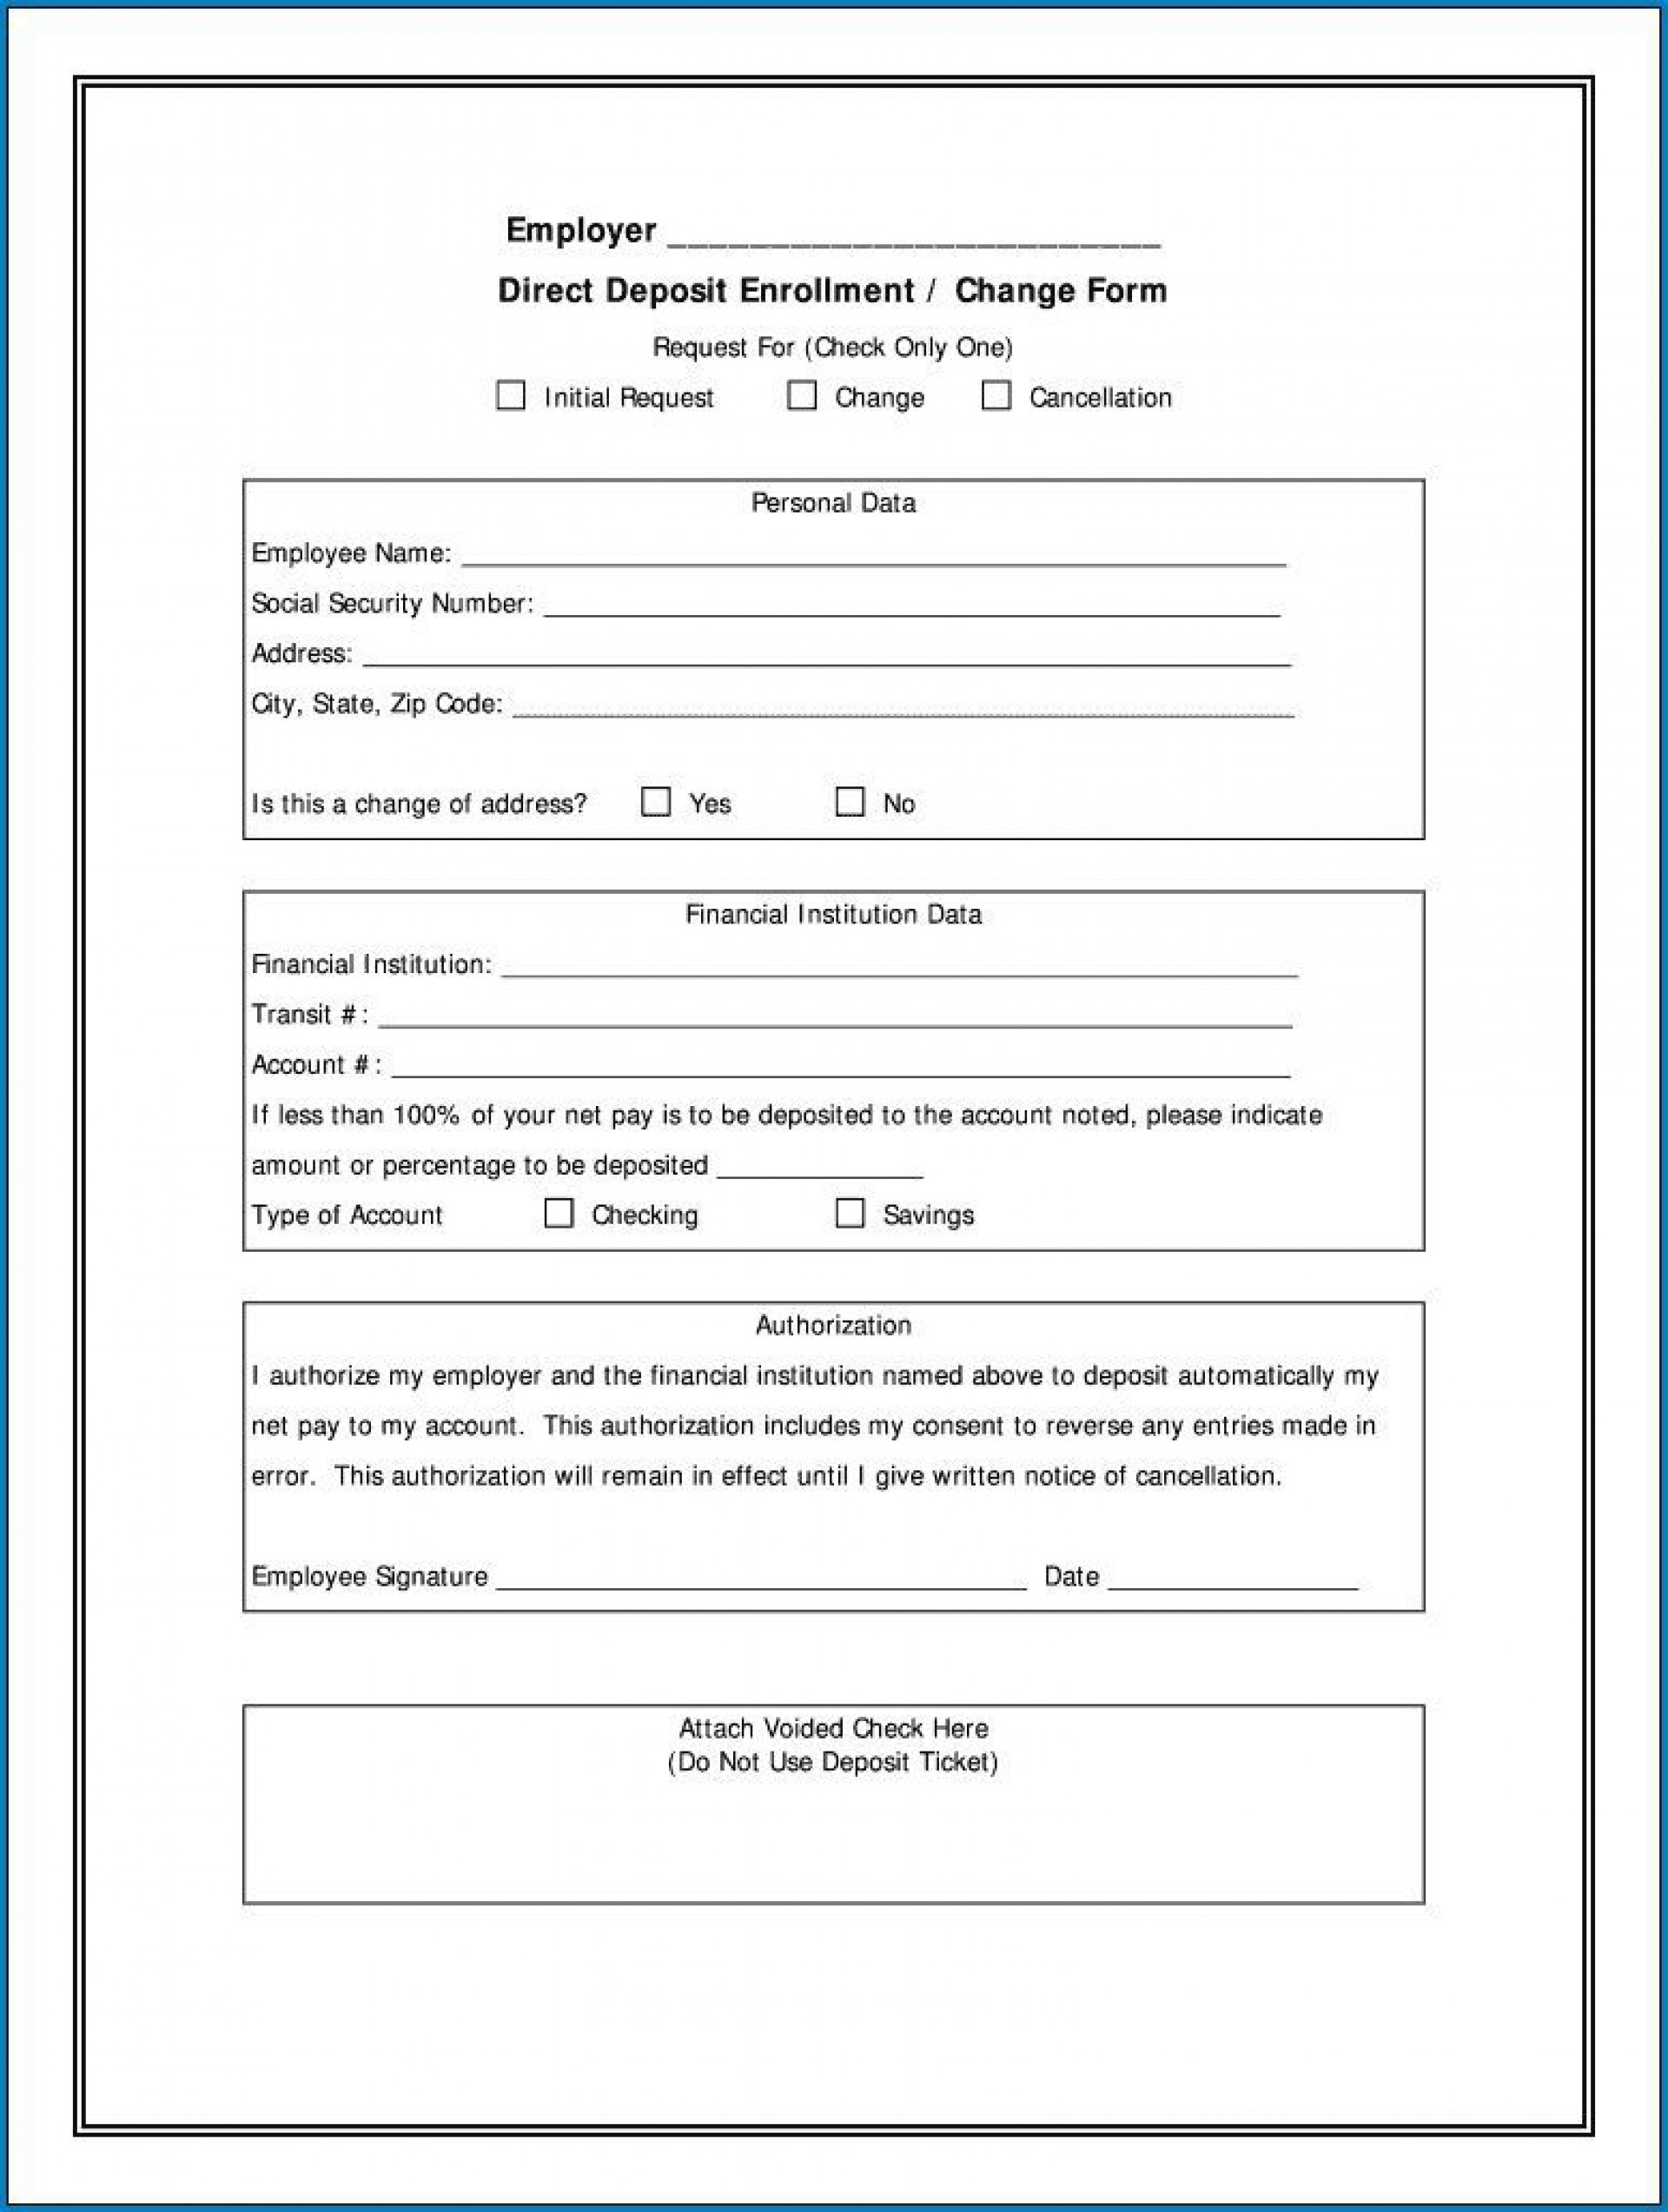 007 Exceptional Direct Deposit Cancellation Form Template Highest Quality  Authorization Canada Word Payroll1920